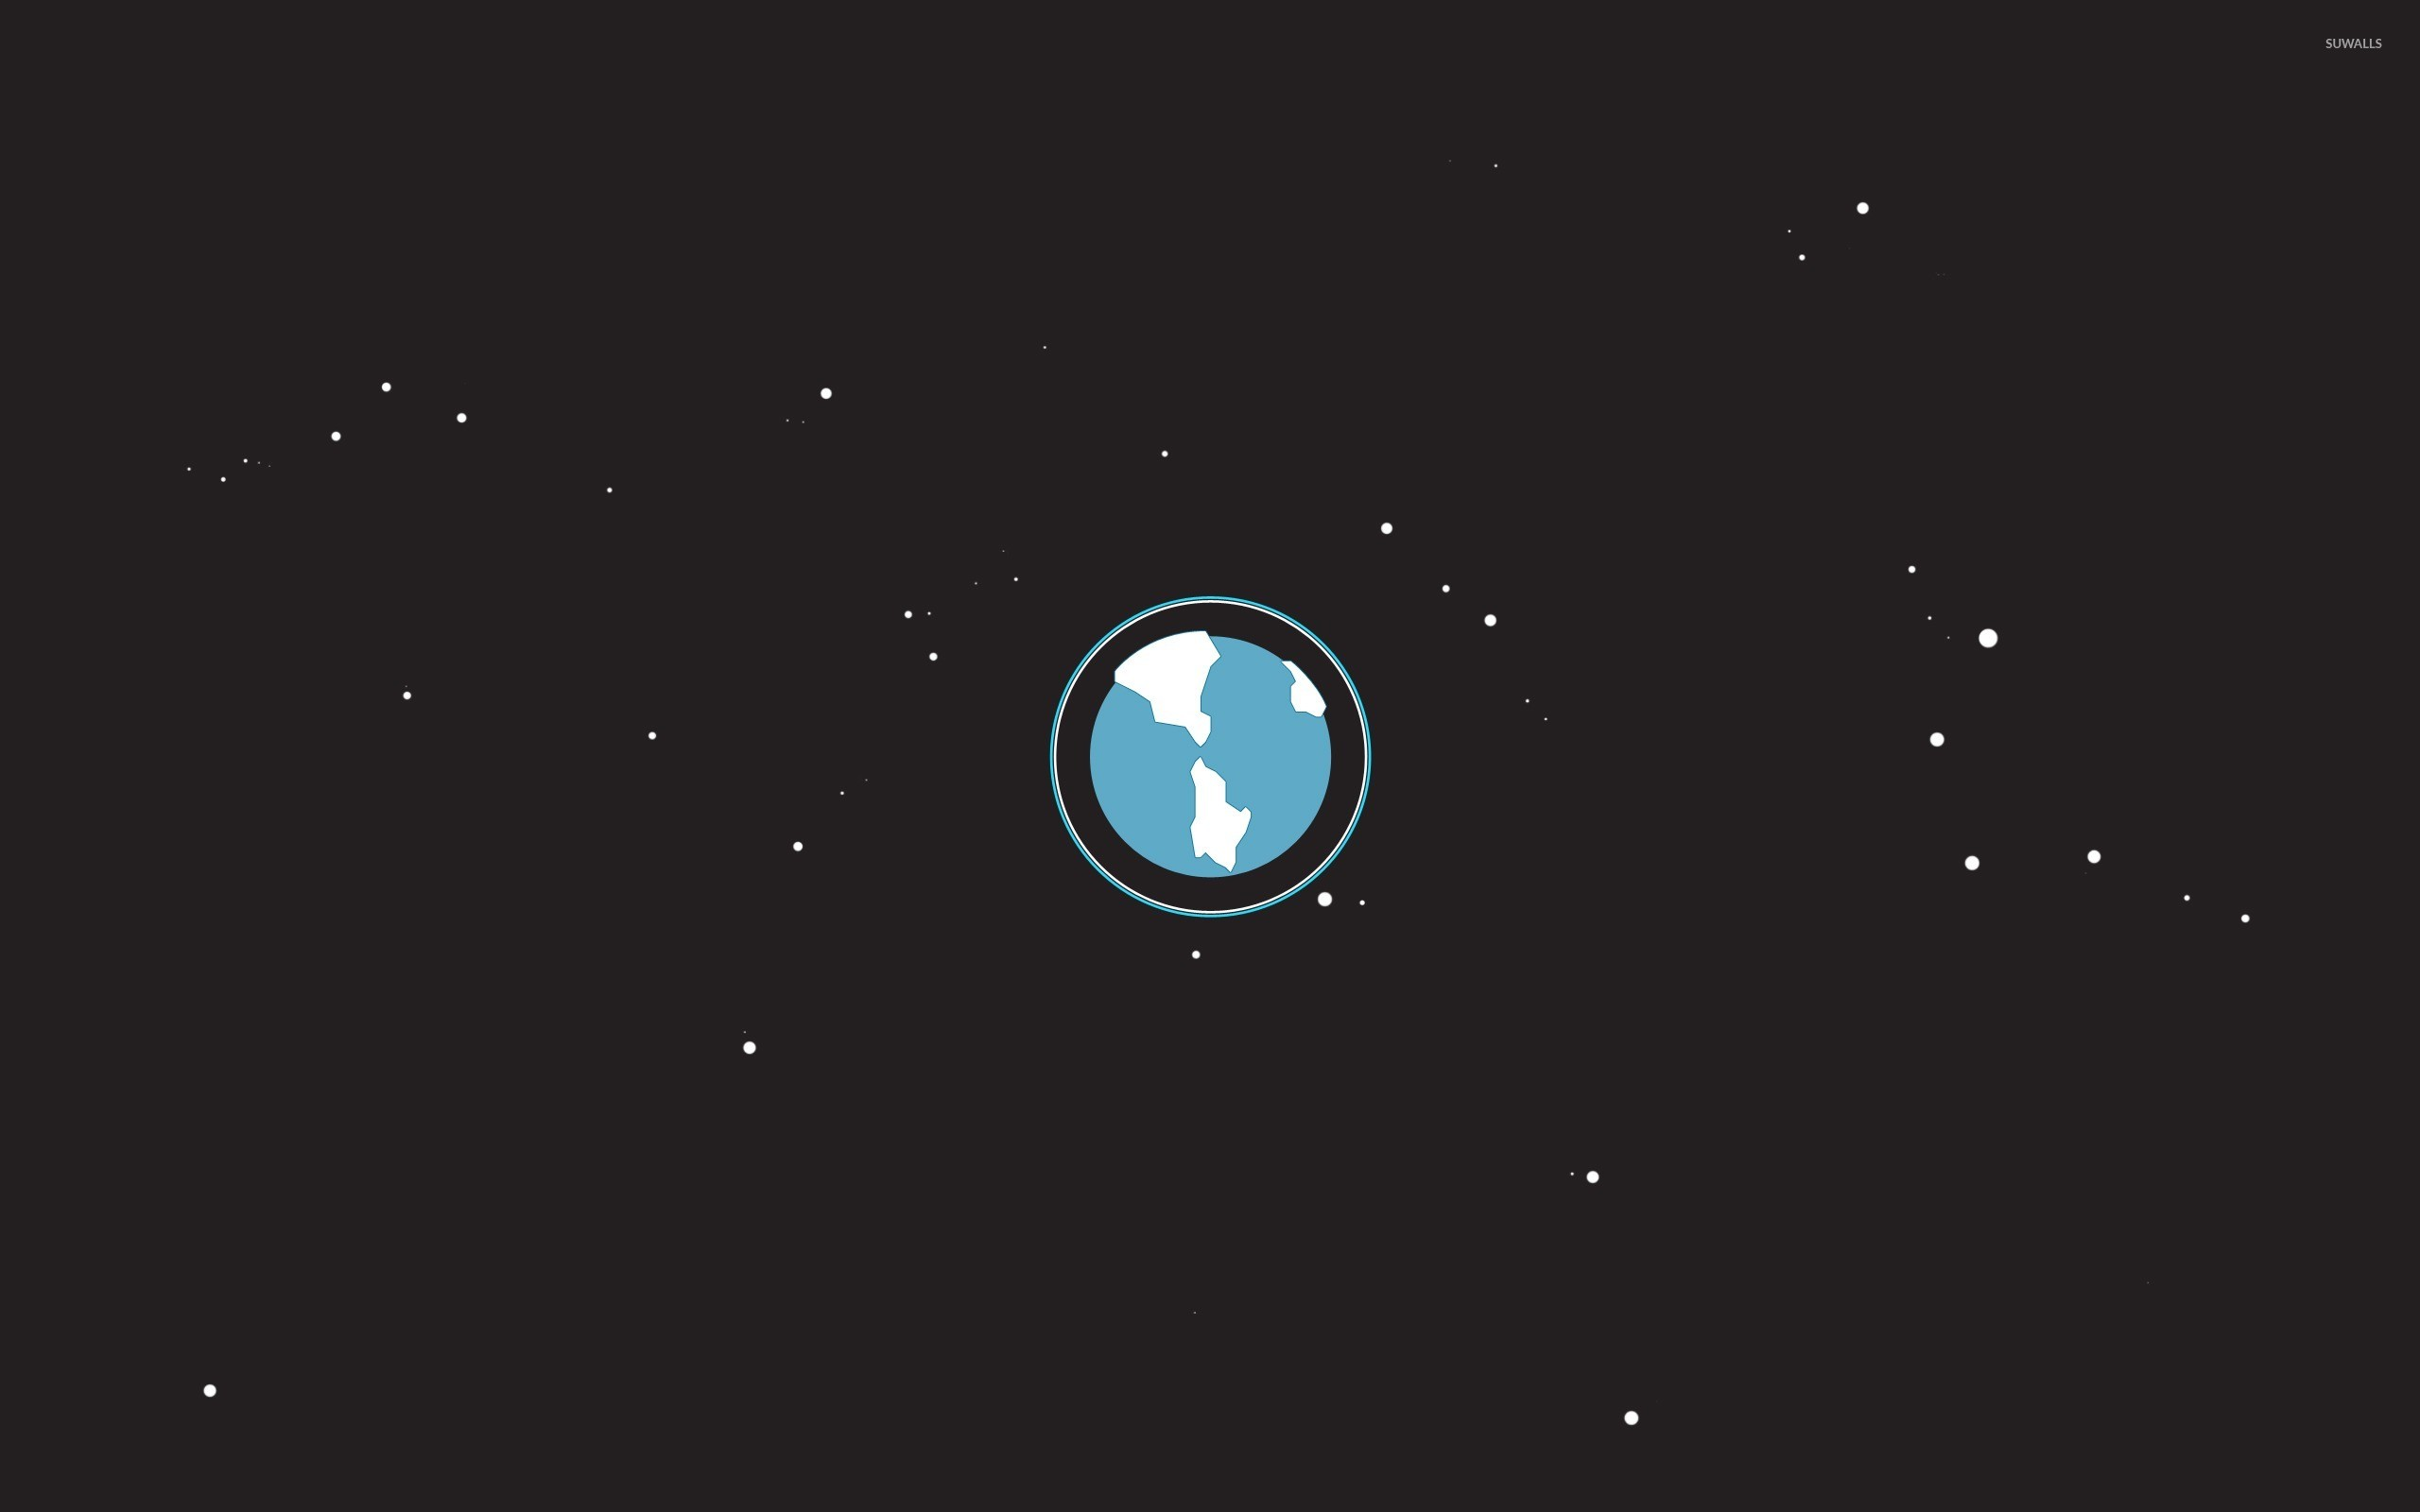 Earth from space wallpaper